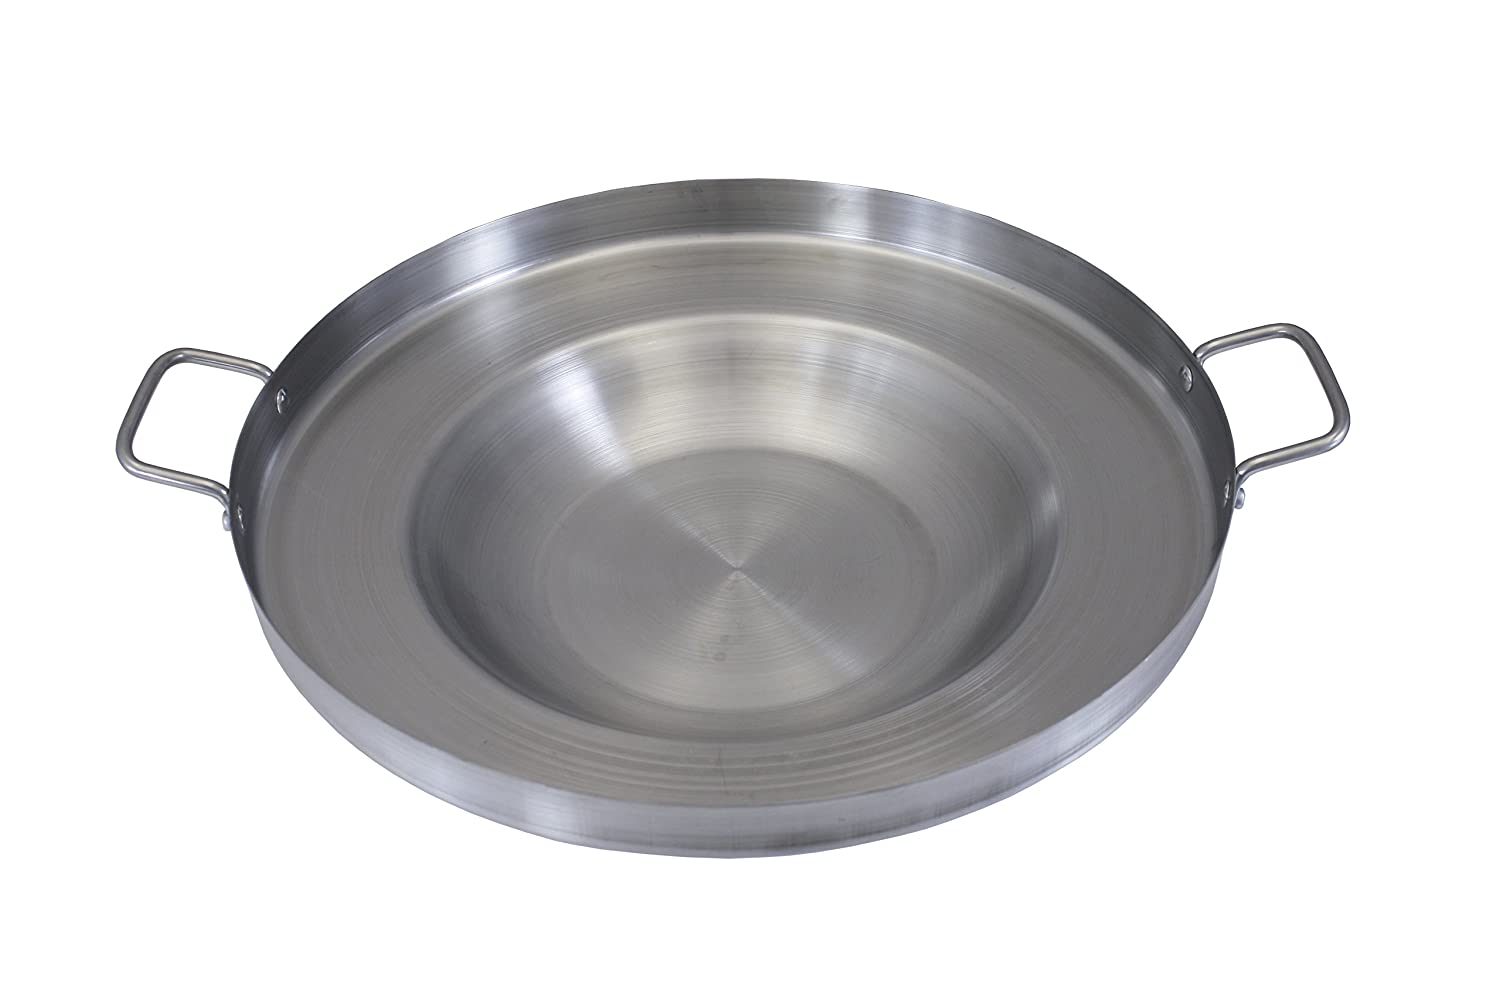 "Concord Global Trading CONCORD Stainless Steel Comal Frying Bowl Cookware (22"")"